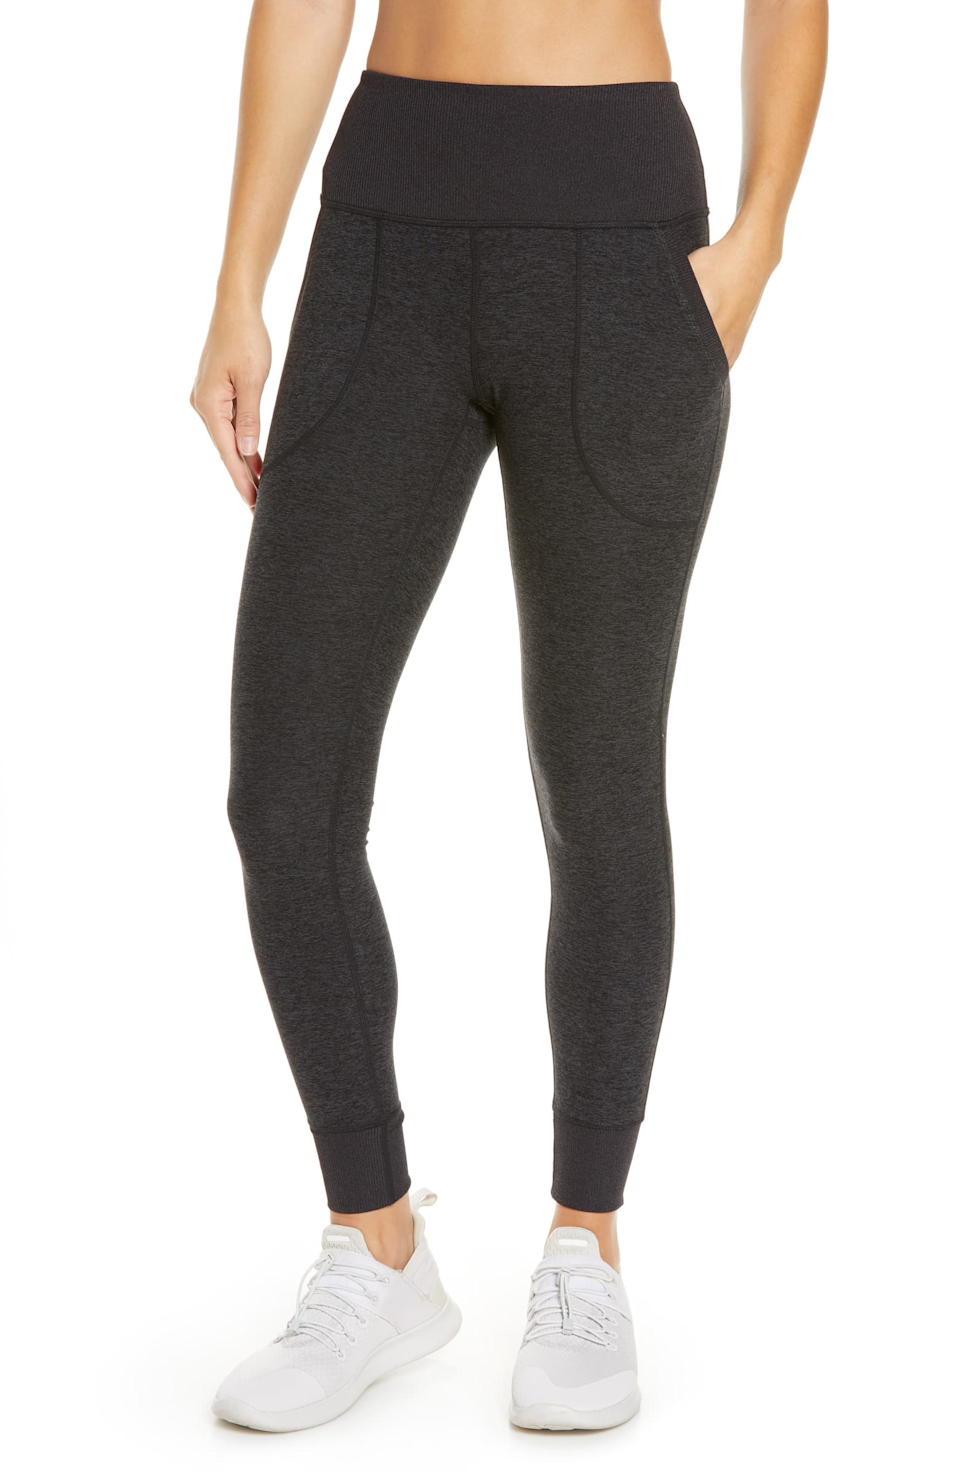 "<h2>Zella Restore Soft Pocket Lounge Legging</h2><br>Black leggings got the top-shopped 2020 treatment with <a href=""https://refinery29.com/en-us/soft-leggings"" rel=""nofollow noopener"" target=""_blank"" data-ylk=""slk:super-soft style iterations"" class=""link rapid-noclick-resp"">super-soft style iterations</a> — like this most wanted Zella pair (complete with pockets) that readers couldn't quit carting throughout September.<br><br><em>Shop <strong><a href=""https://www.nordstrom.com/s/zella-restore-soft-pocket-lounge-leggings/5527402"" rel=""nofollow noopener"" target=""_blank"" data-ylk=""slk:Zella"" class=""link rapid-noclick-resp"">Zella</a></strong></em><br><br><strong>Zella</strong> Restore Soft Pocket Lounge Leggings, $, available at <a href=""https://go.skimresources.com/?id=30283X879131&url=https%3A%2F%2Fwww.nordstrom.com%2Fs%2Fzella-restore-soft-pocket-lounge-leggings%2F5527402"" rel=""nofollow noopener"" target=""_blank"" data-ylk=""slk:Nordstrom"" class=""link rapid-noclick-resp"">Nordstrom</a>"